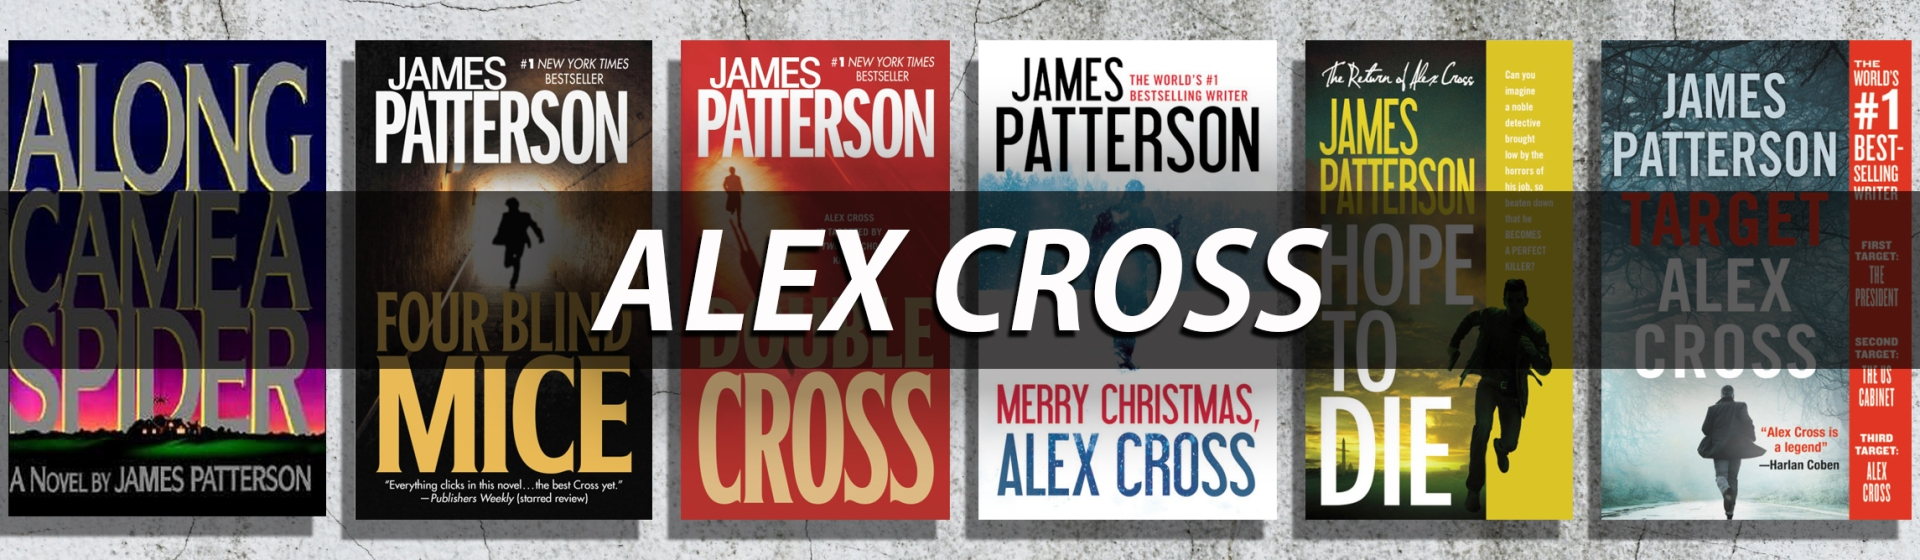 James Patterson S Alex Cross Series Books In Order Hachette